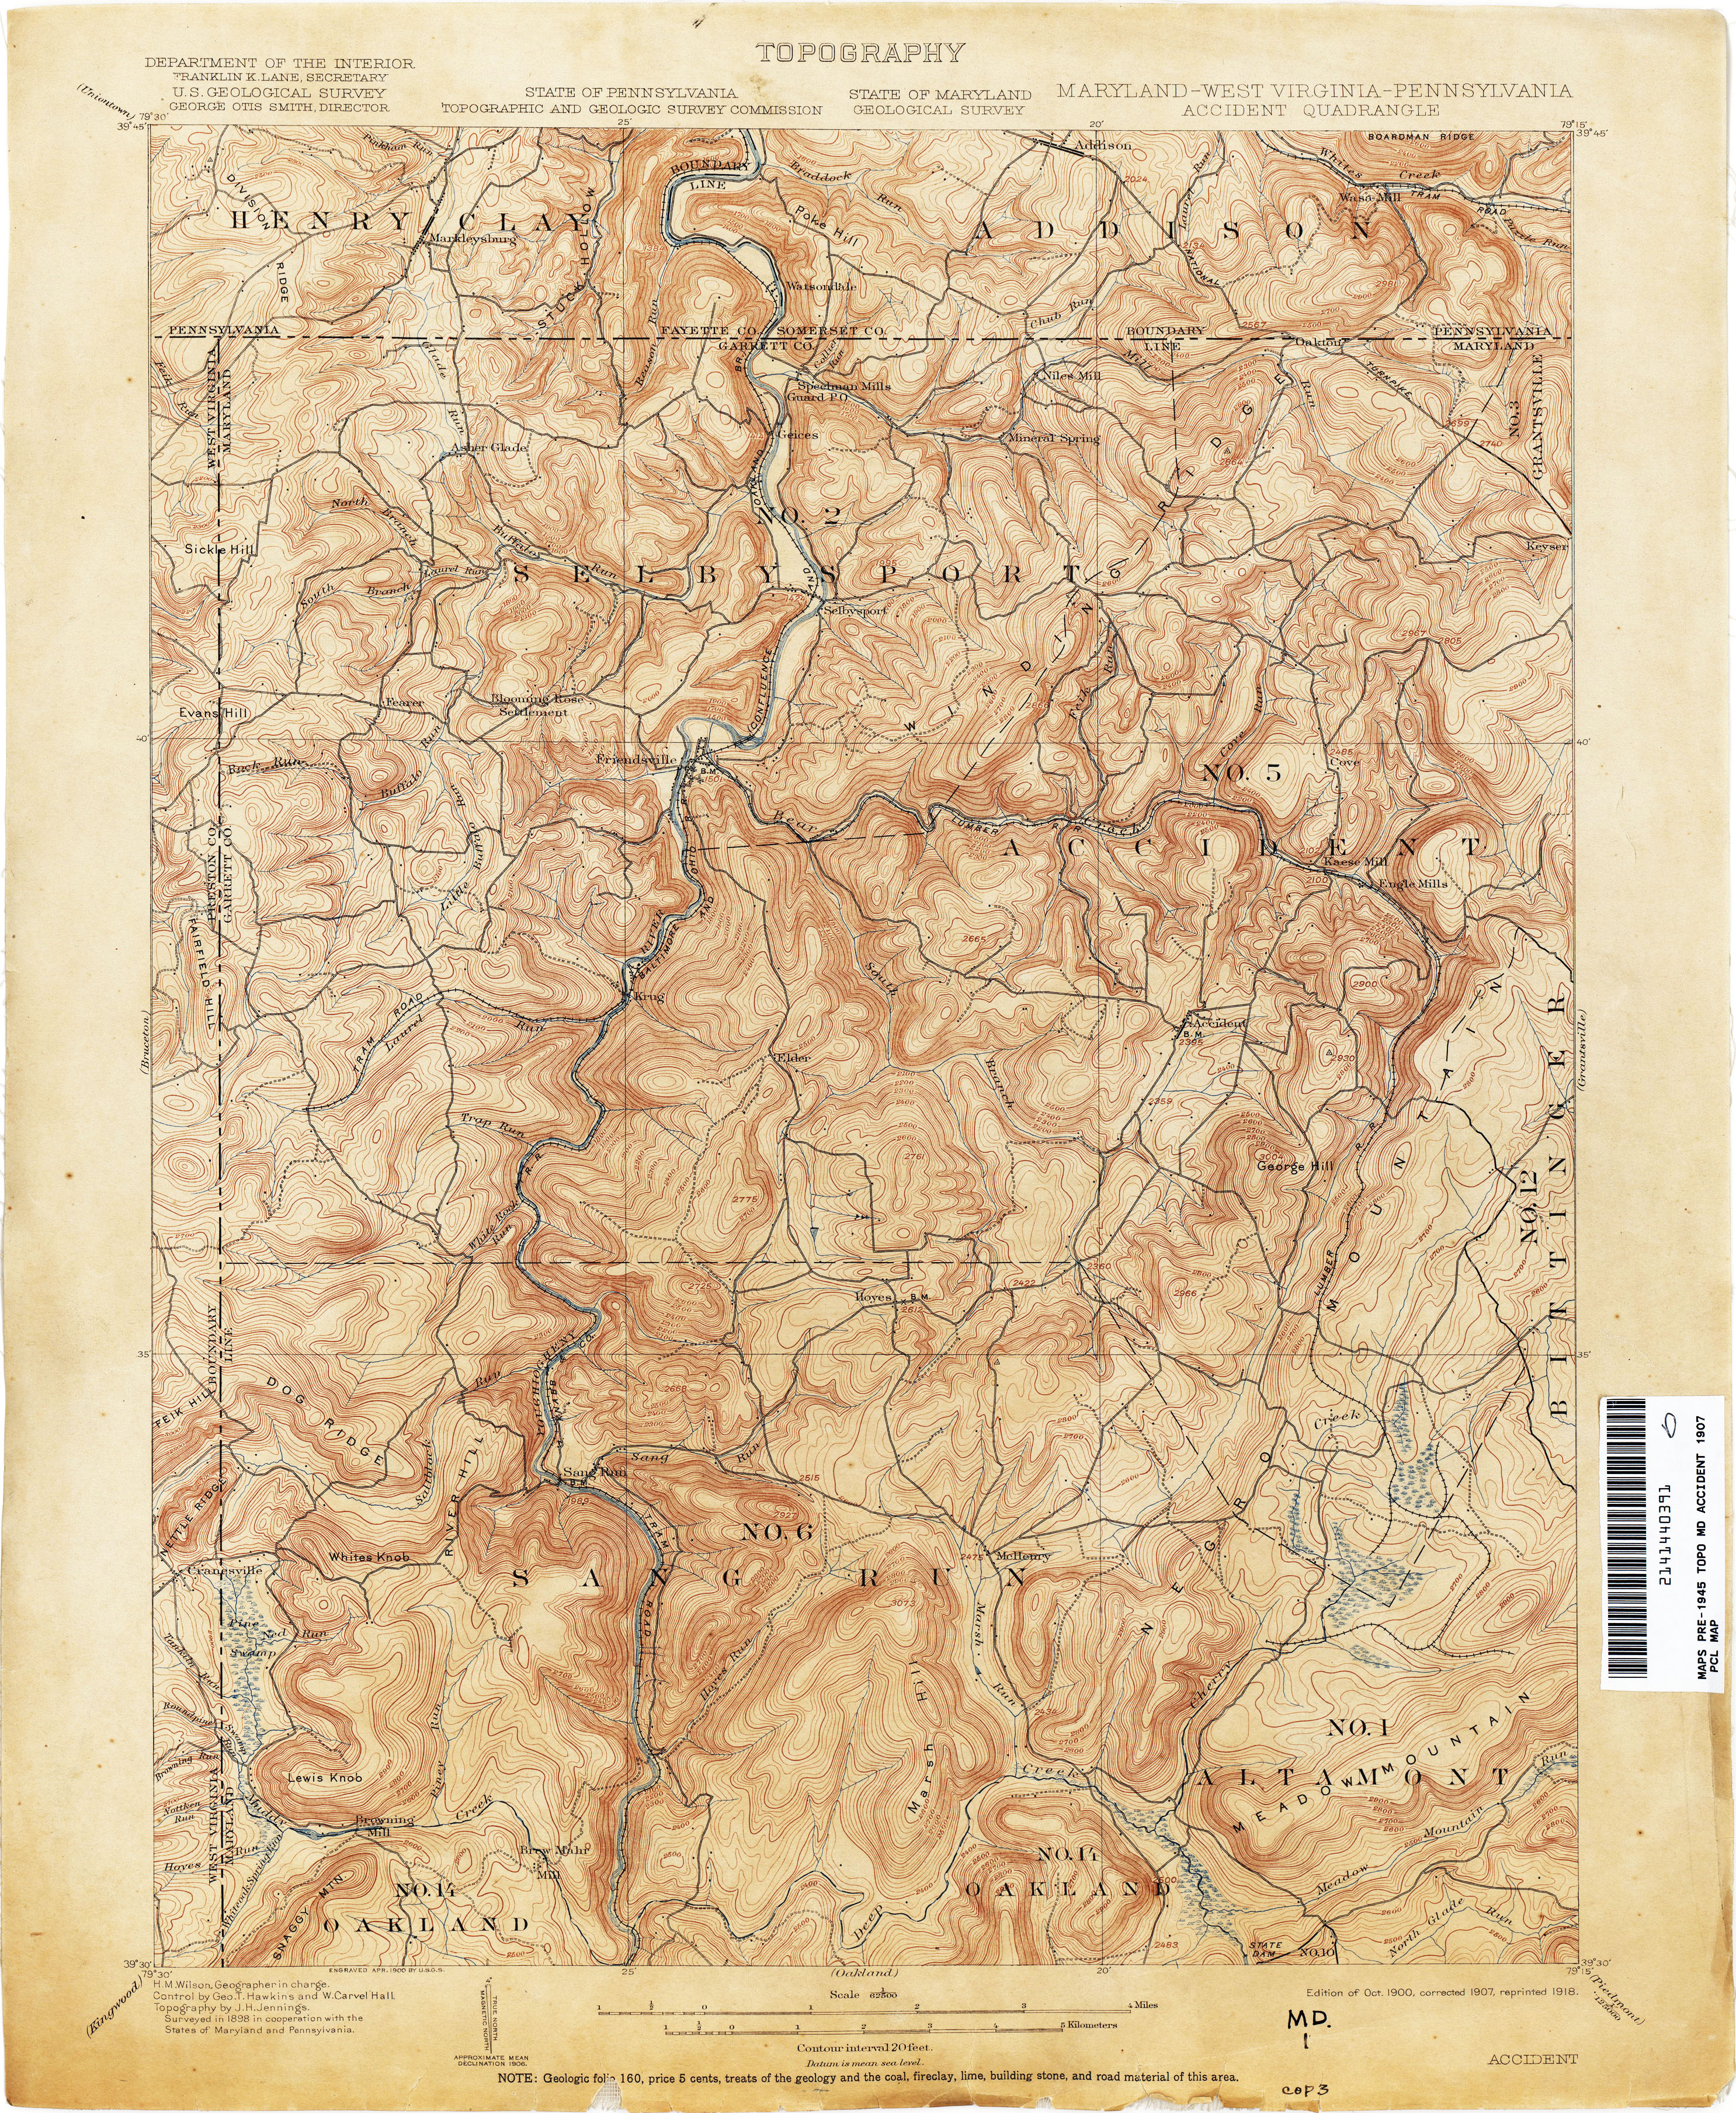 Maryland Historical Topographic Maps - Perry-Castañeda Map